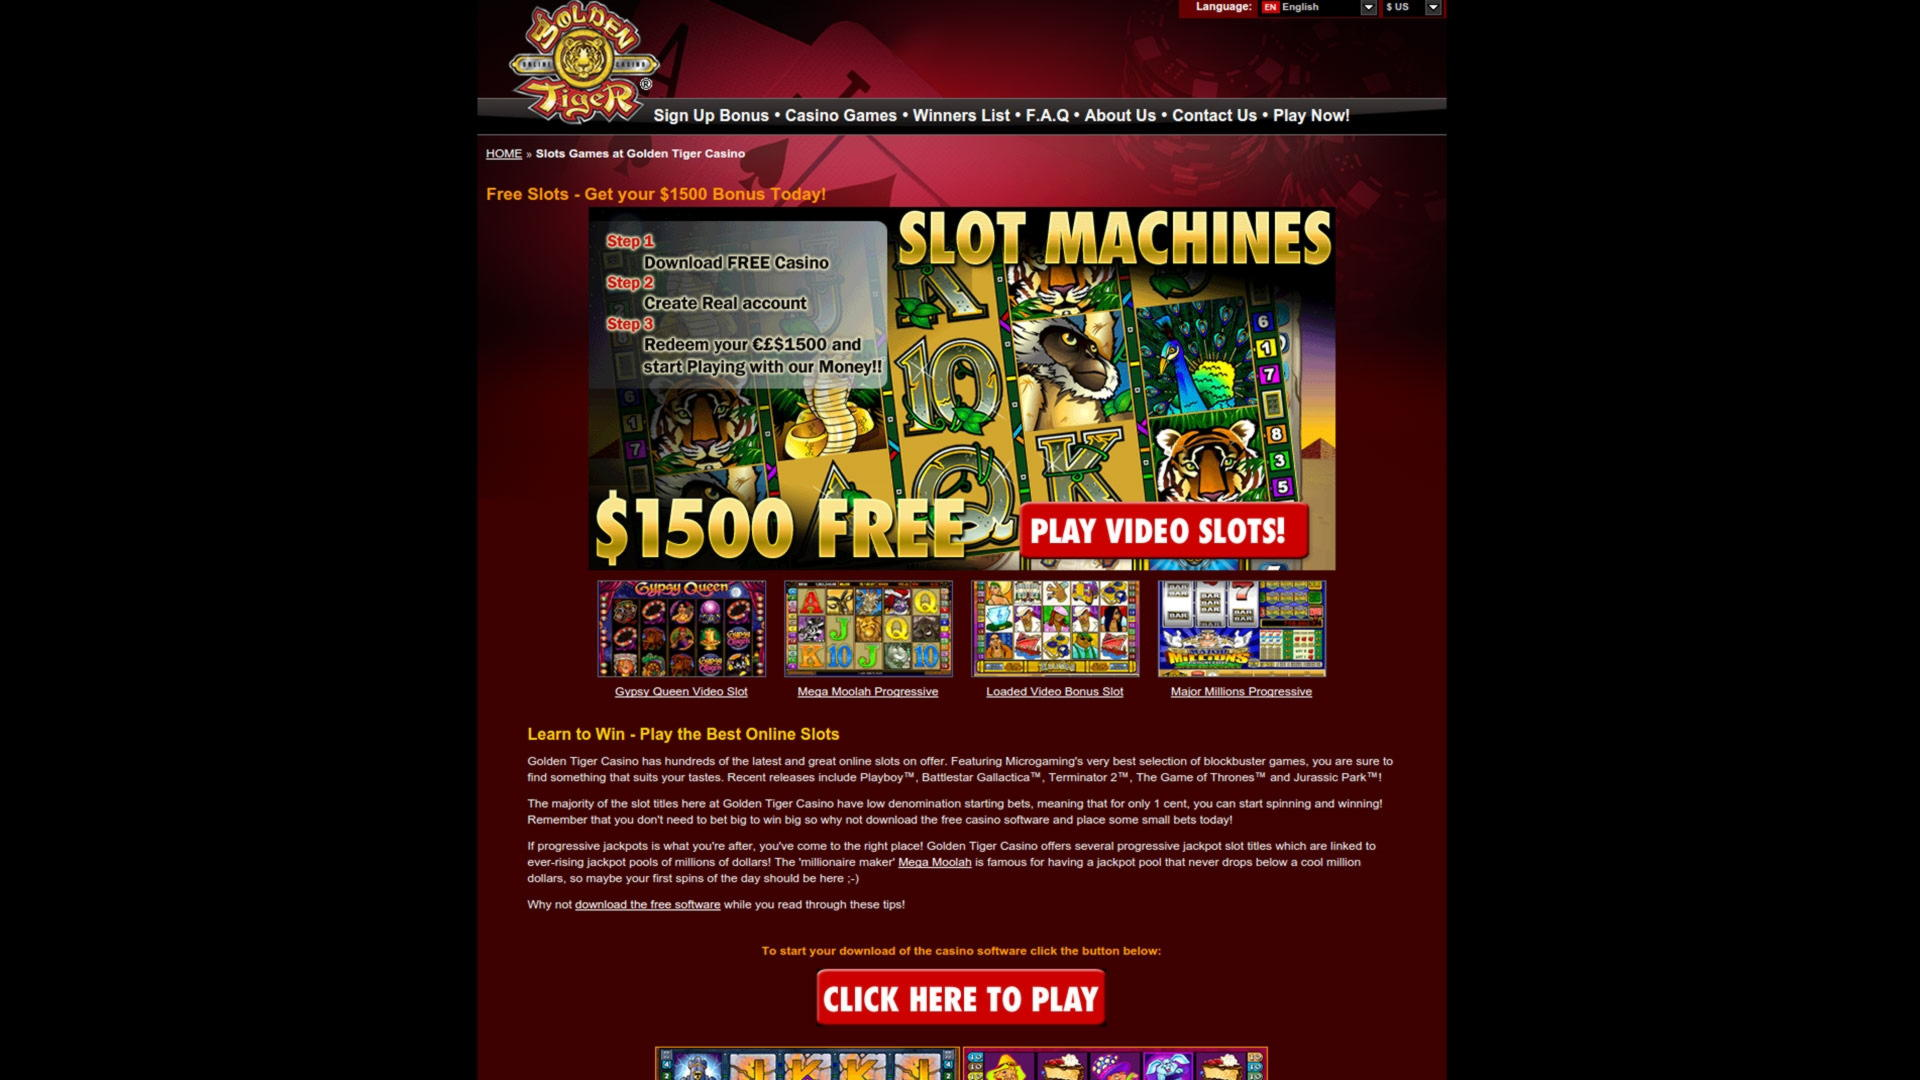 EURO 415 Free Casino Chip sur Guts xpress